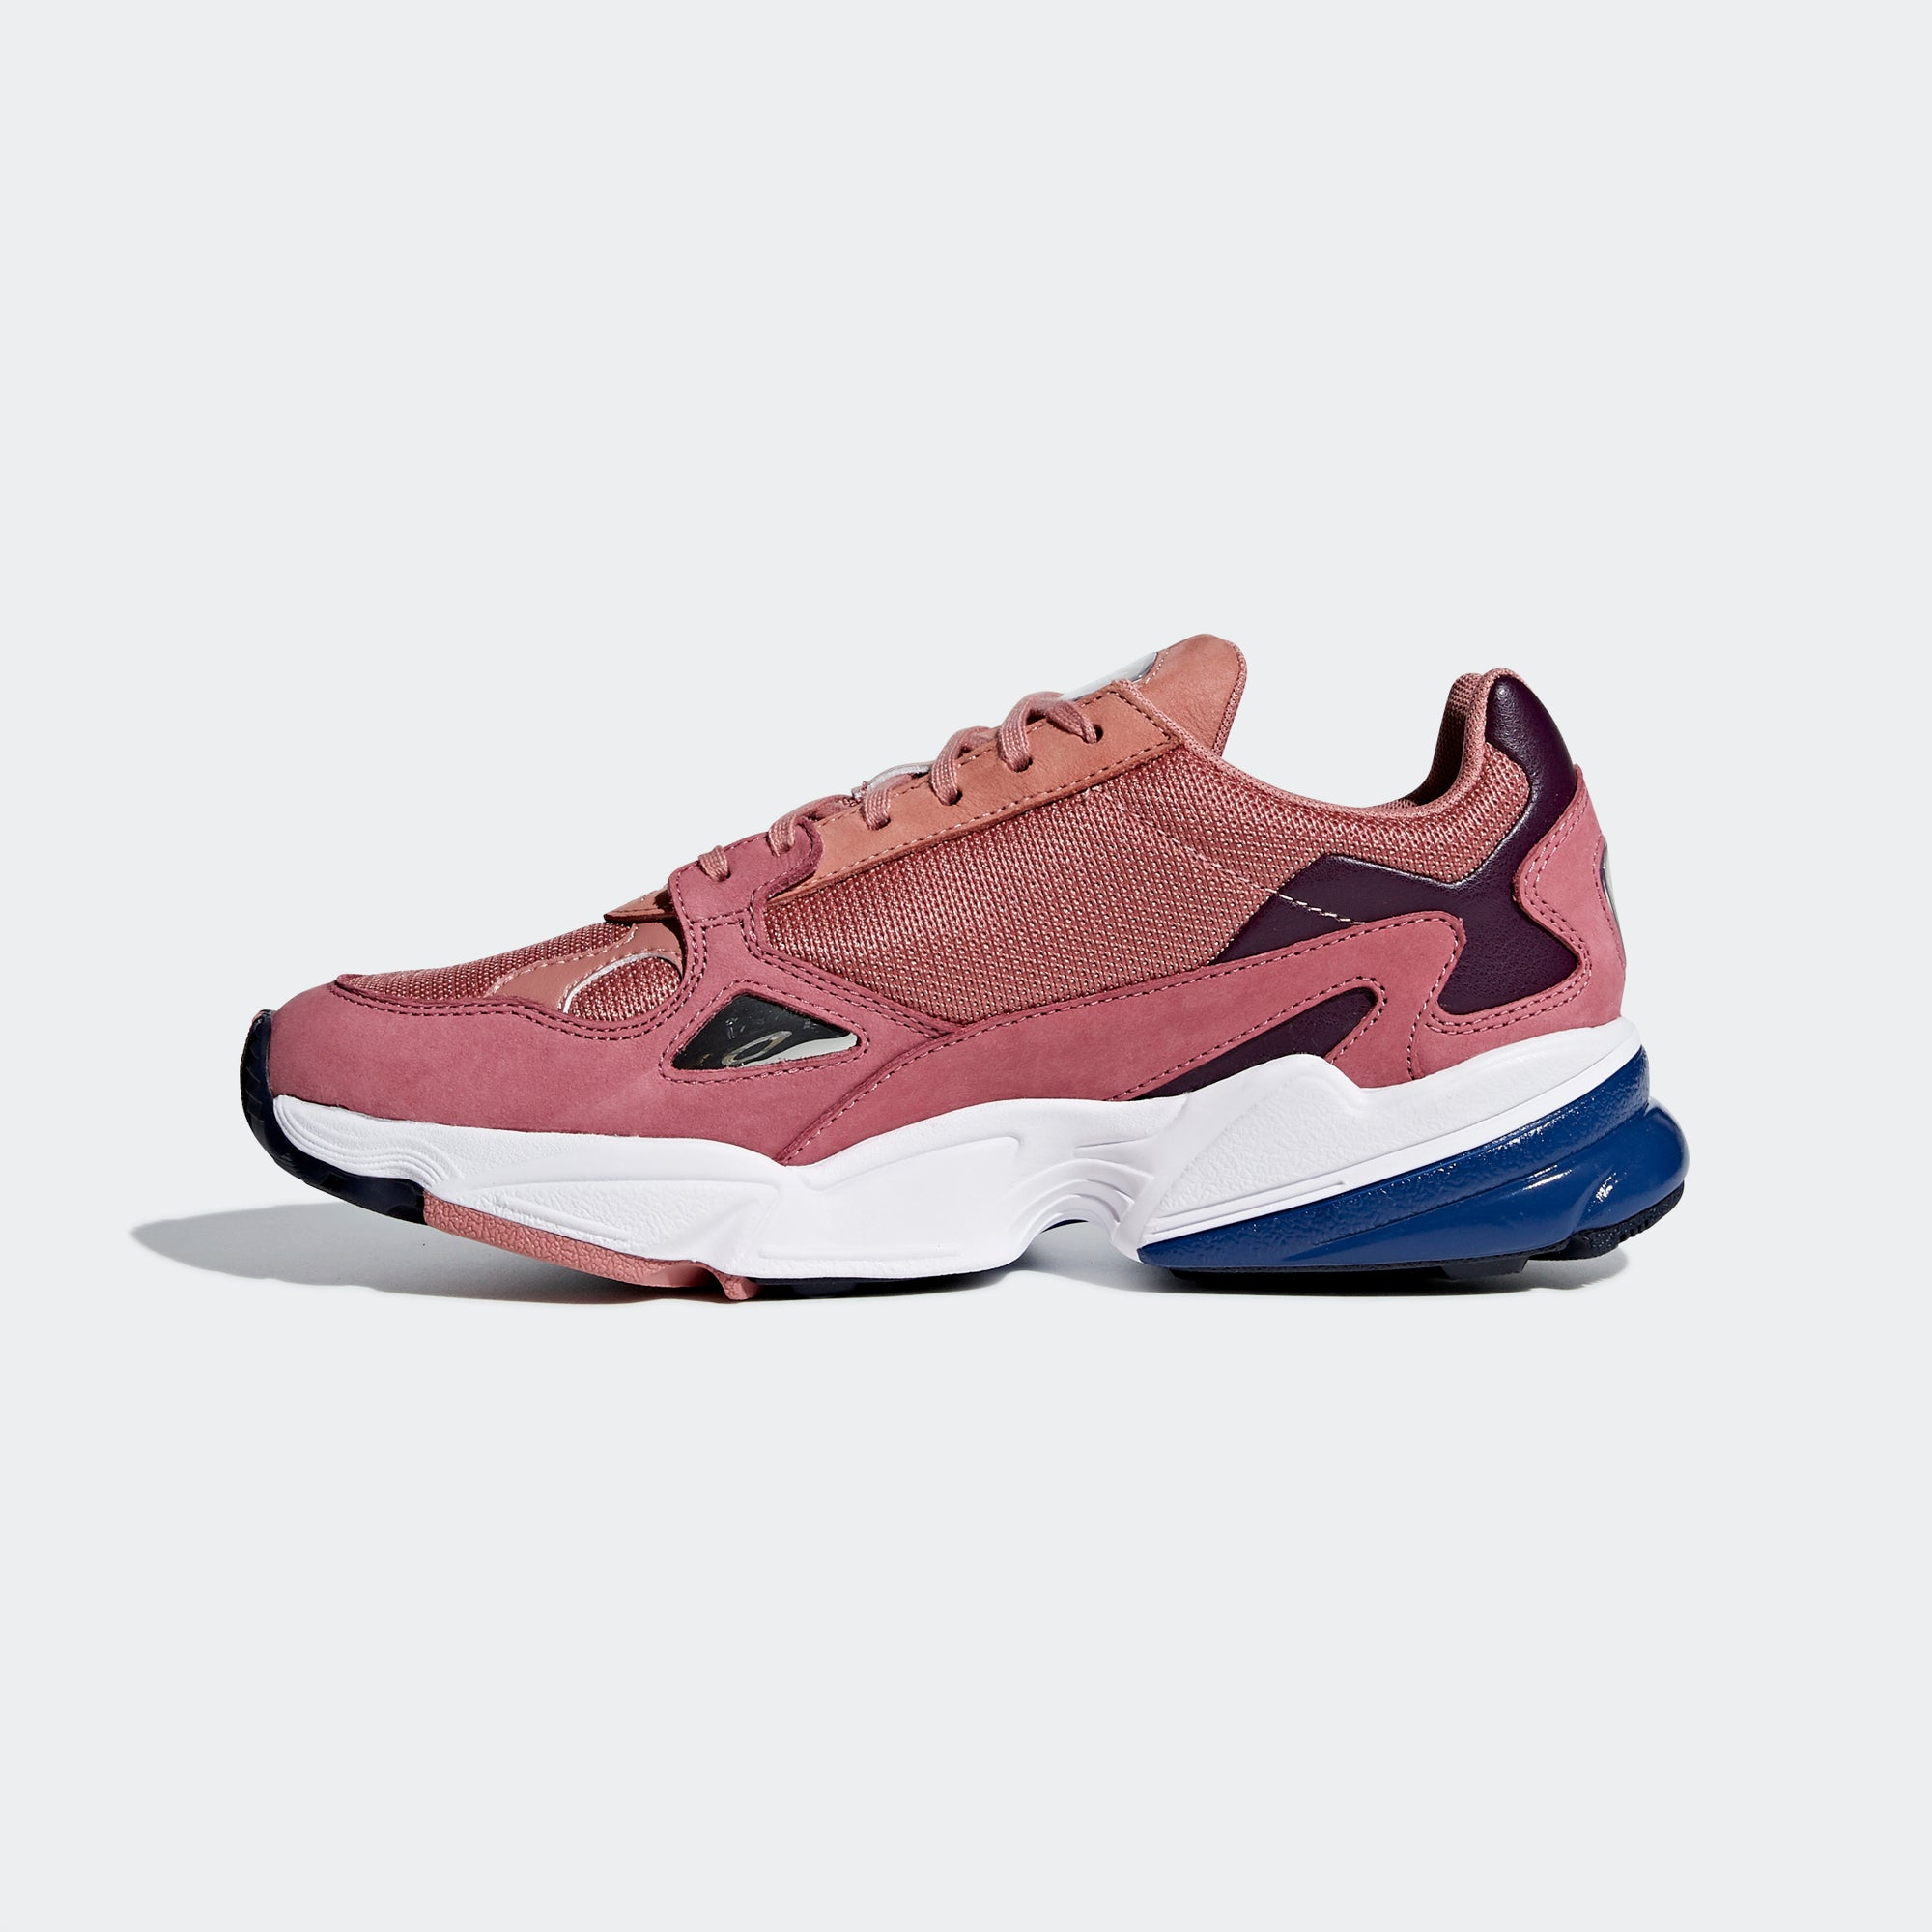 adidas Falcon Shoes Raw Pink D96700